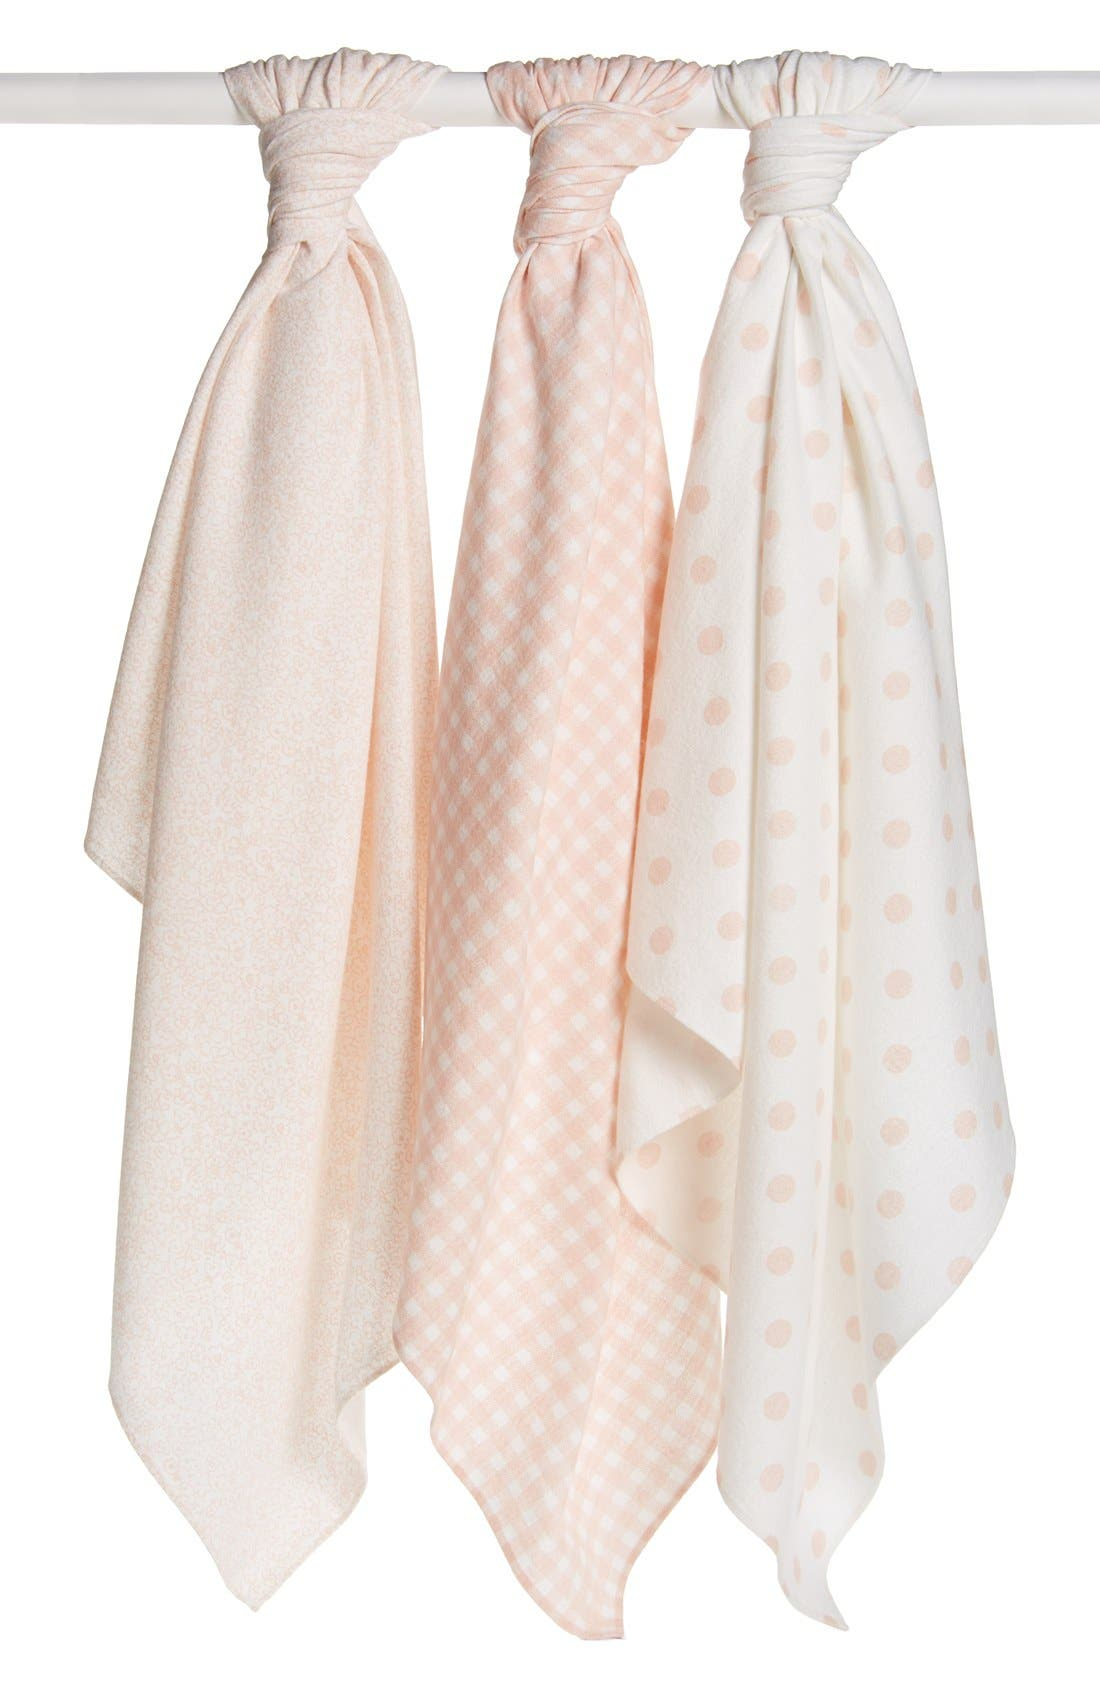 Alternate Image 2  - Nordstrom Baby Cotton Flannel Swaddles (3-Pack)